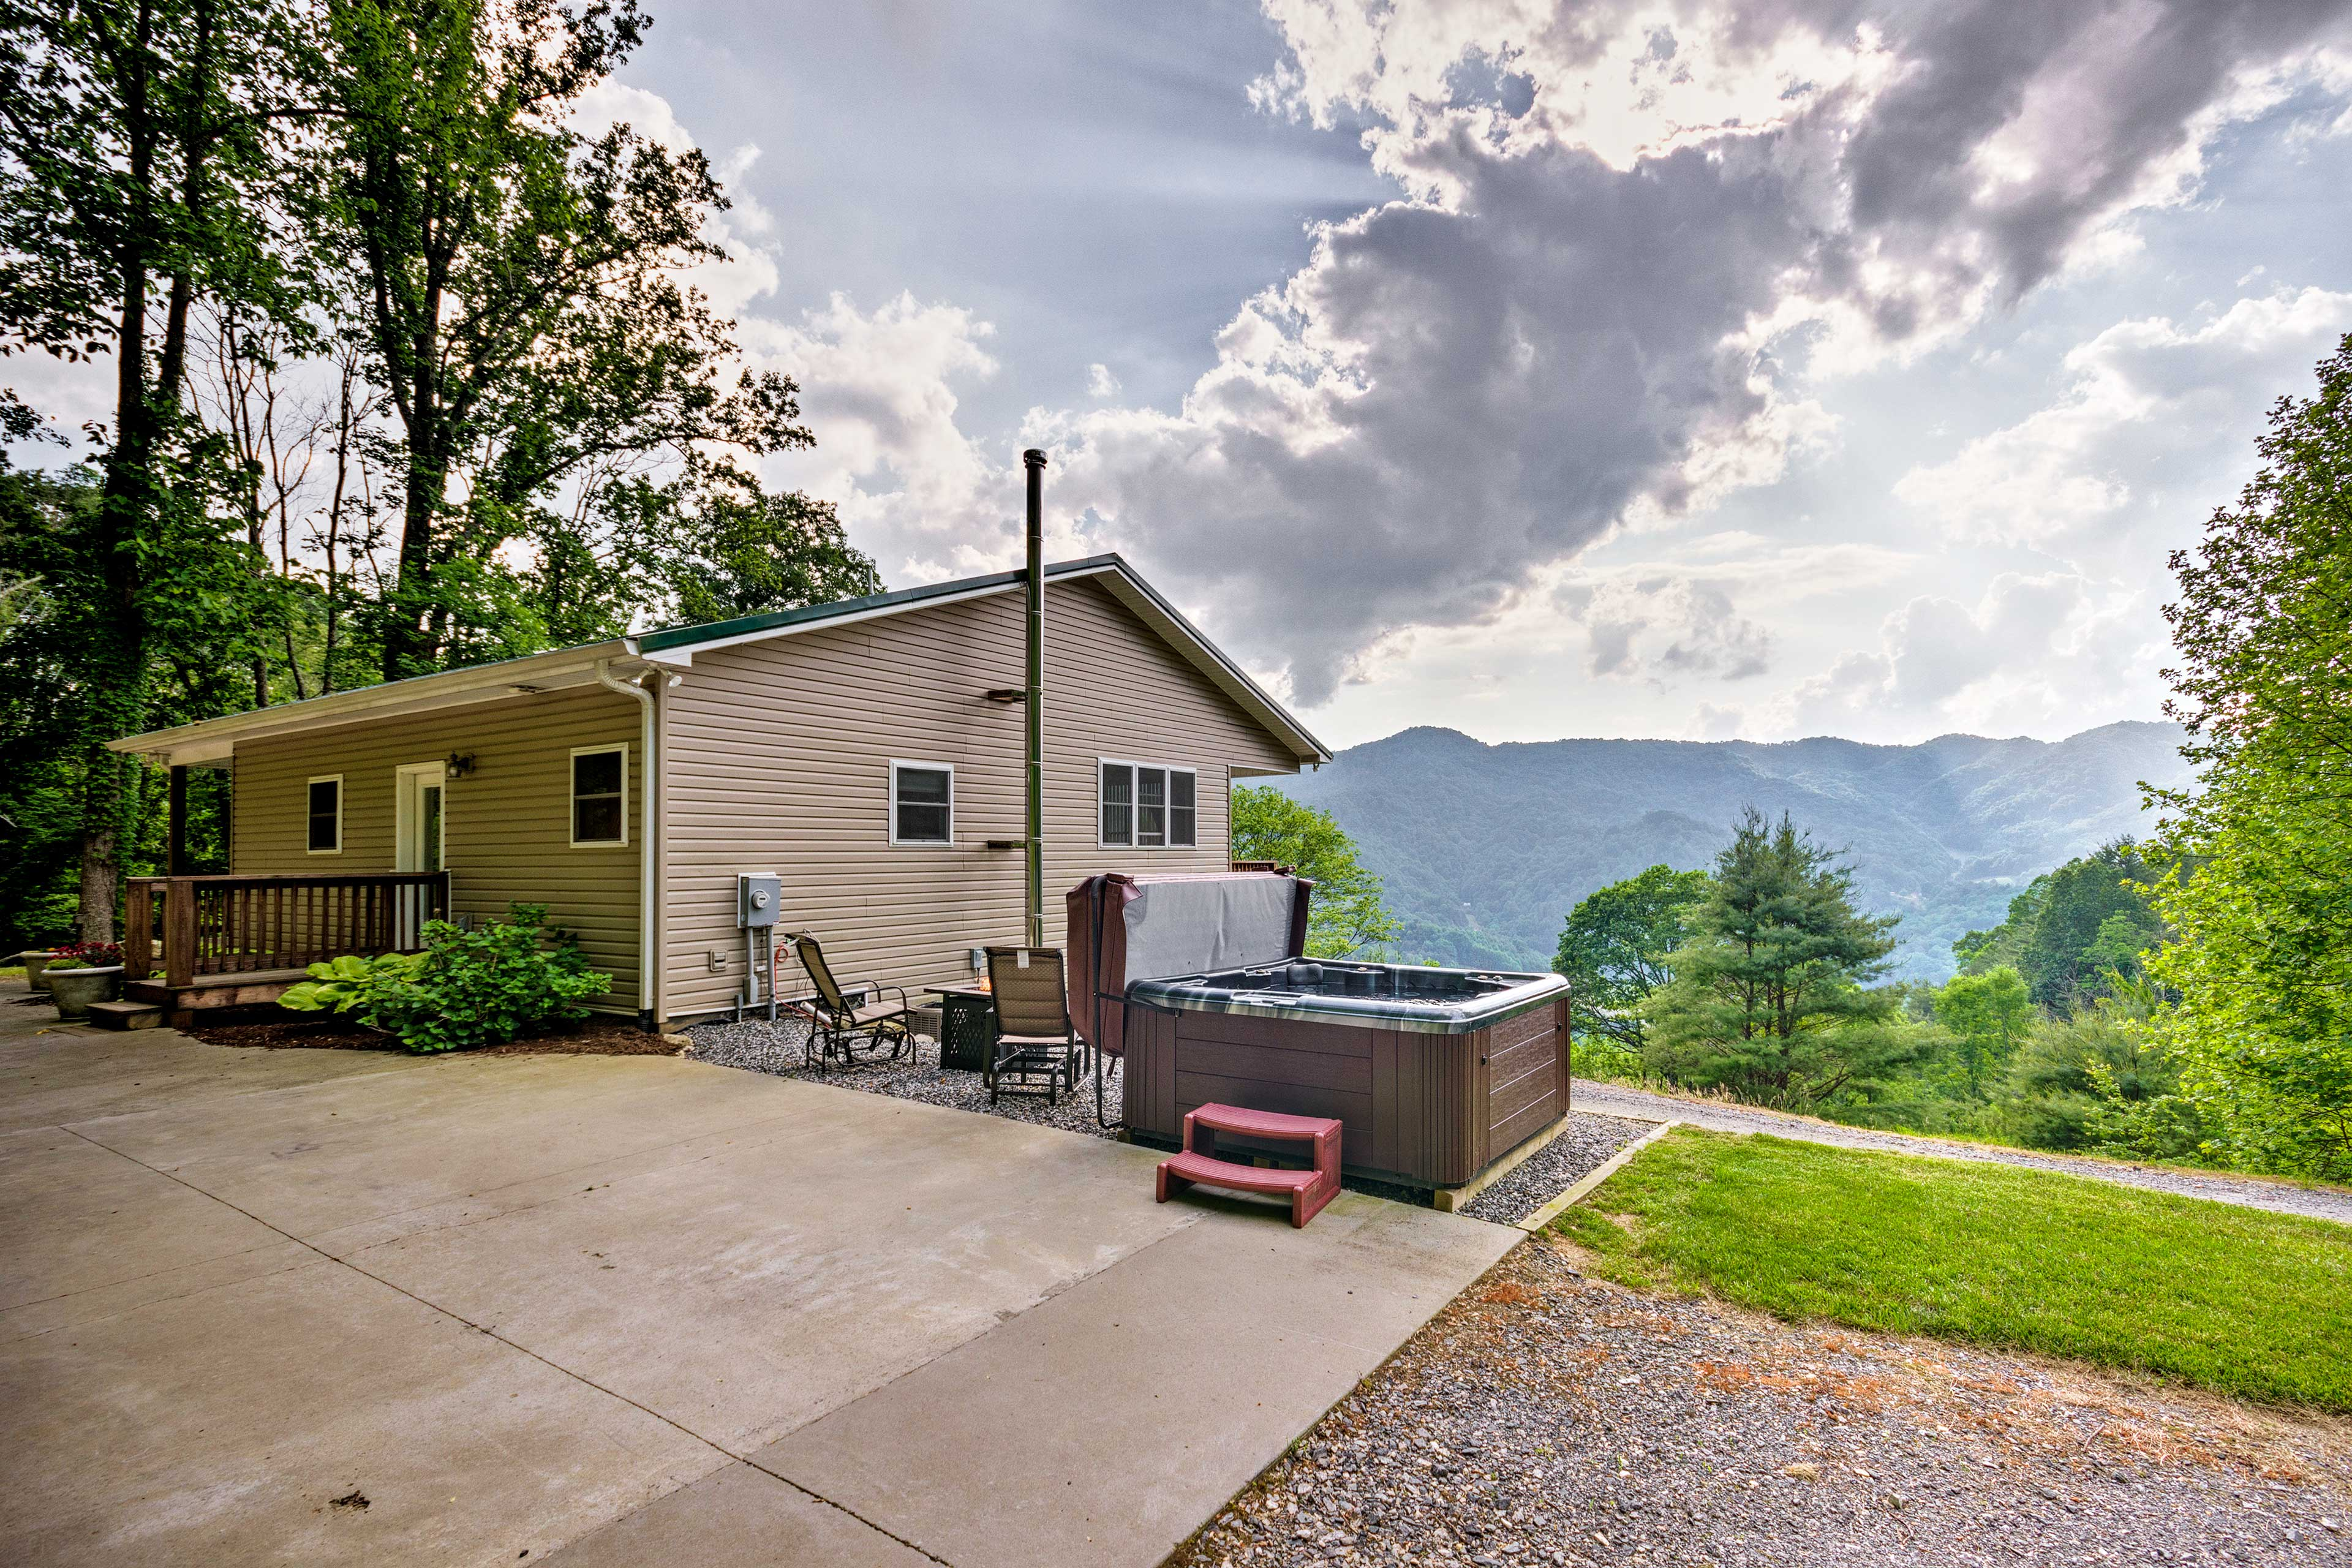 Explore the Asheville area during the day and soak in the hot tub at night!